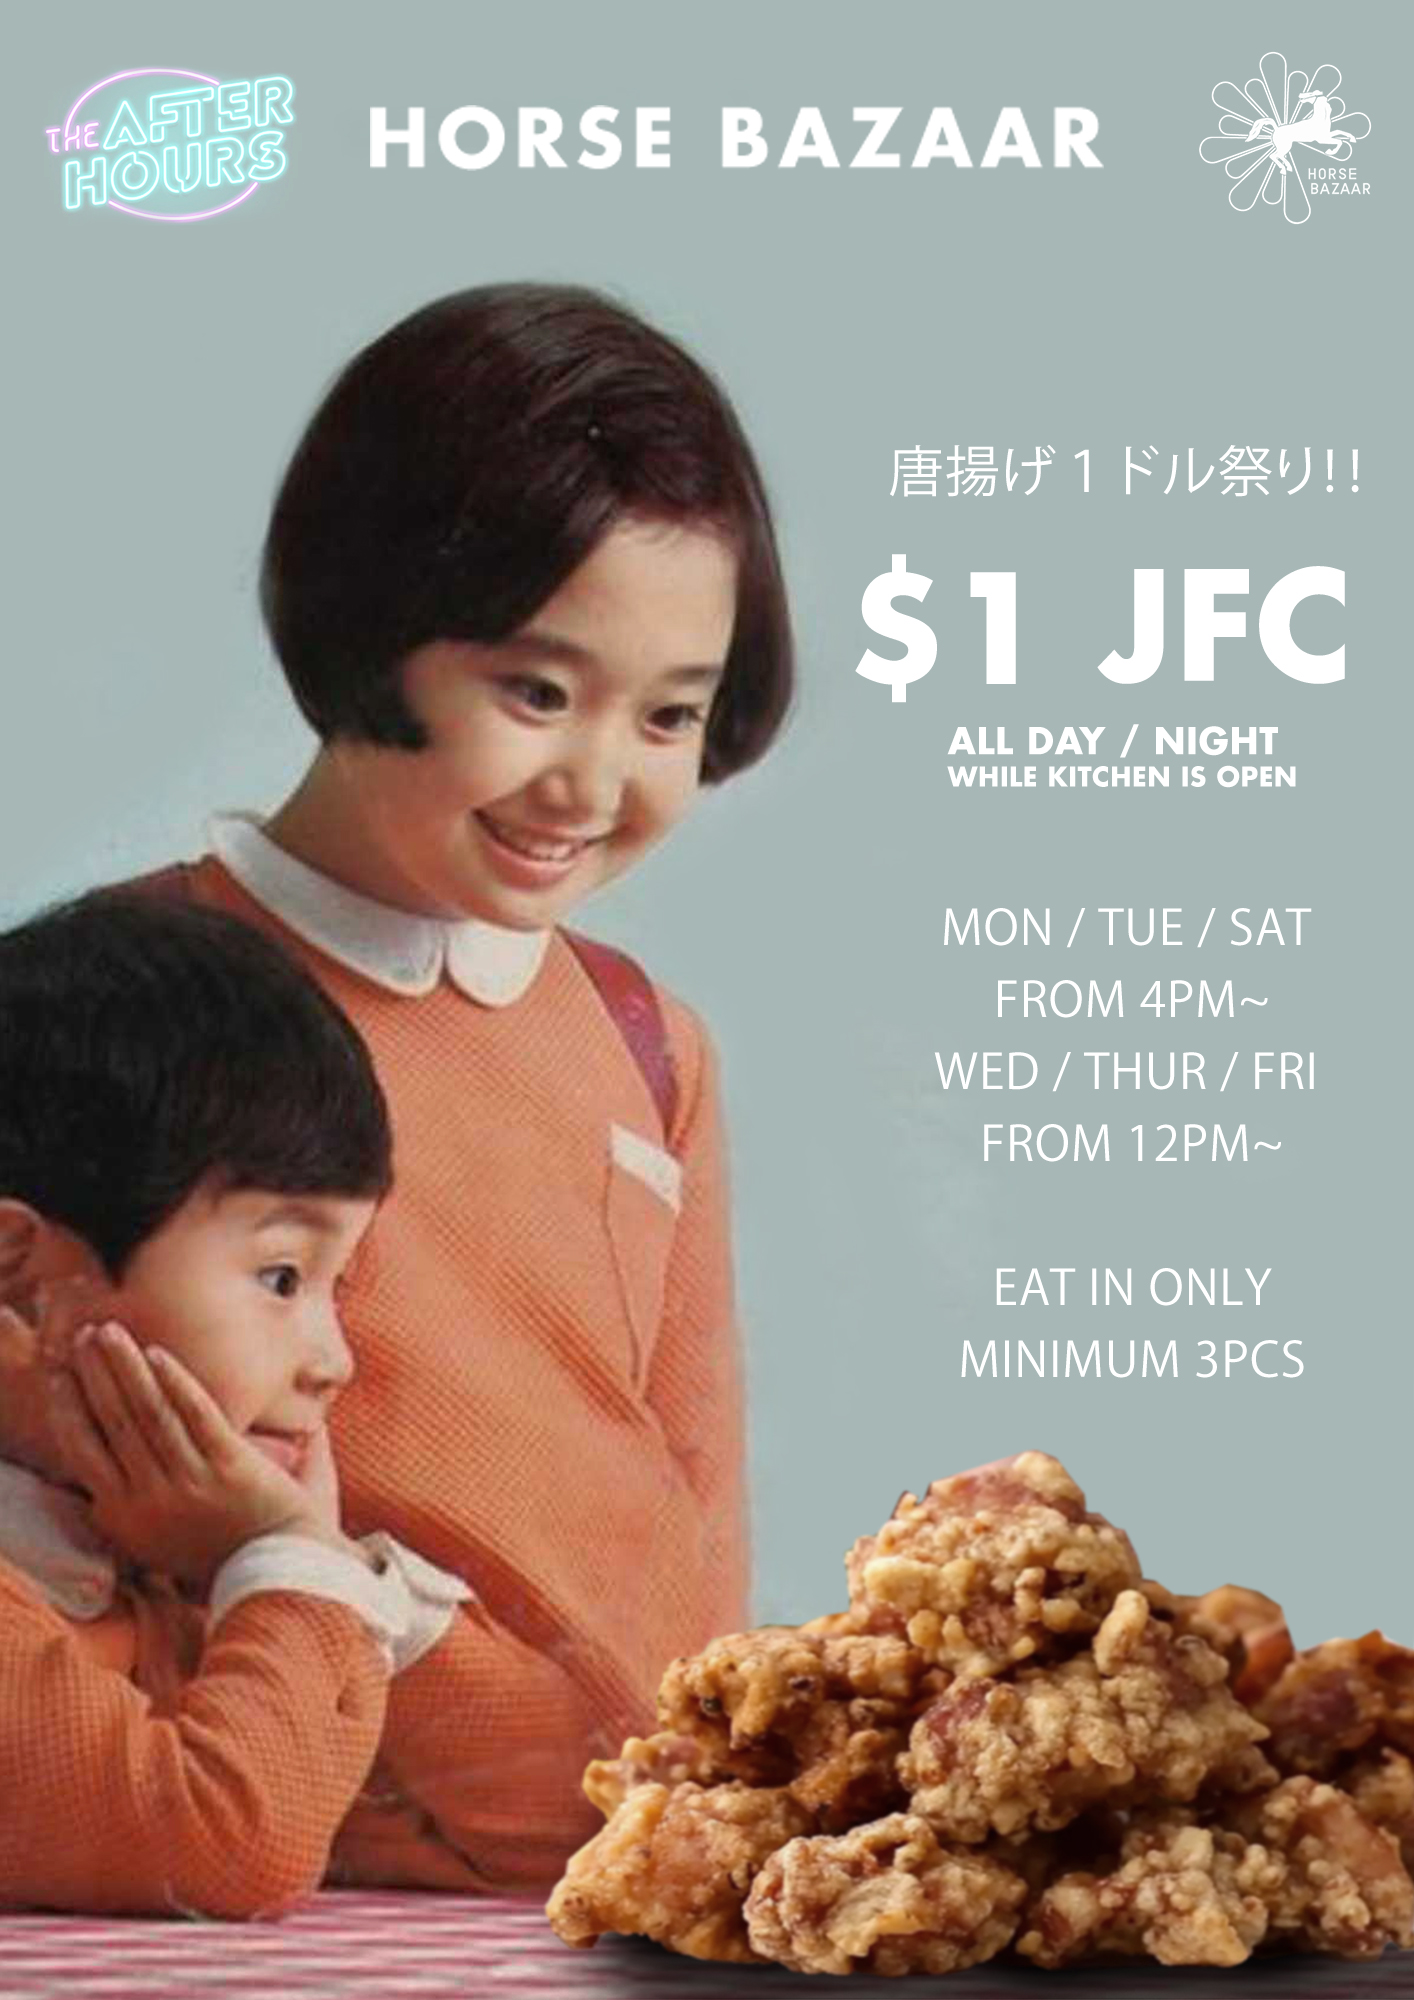 $1 Japanese Fried Chicken - All Day / All Night (While Kitchen Is Open)